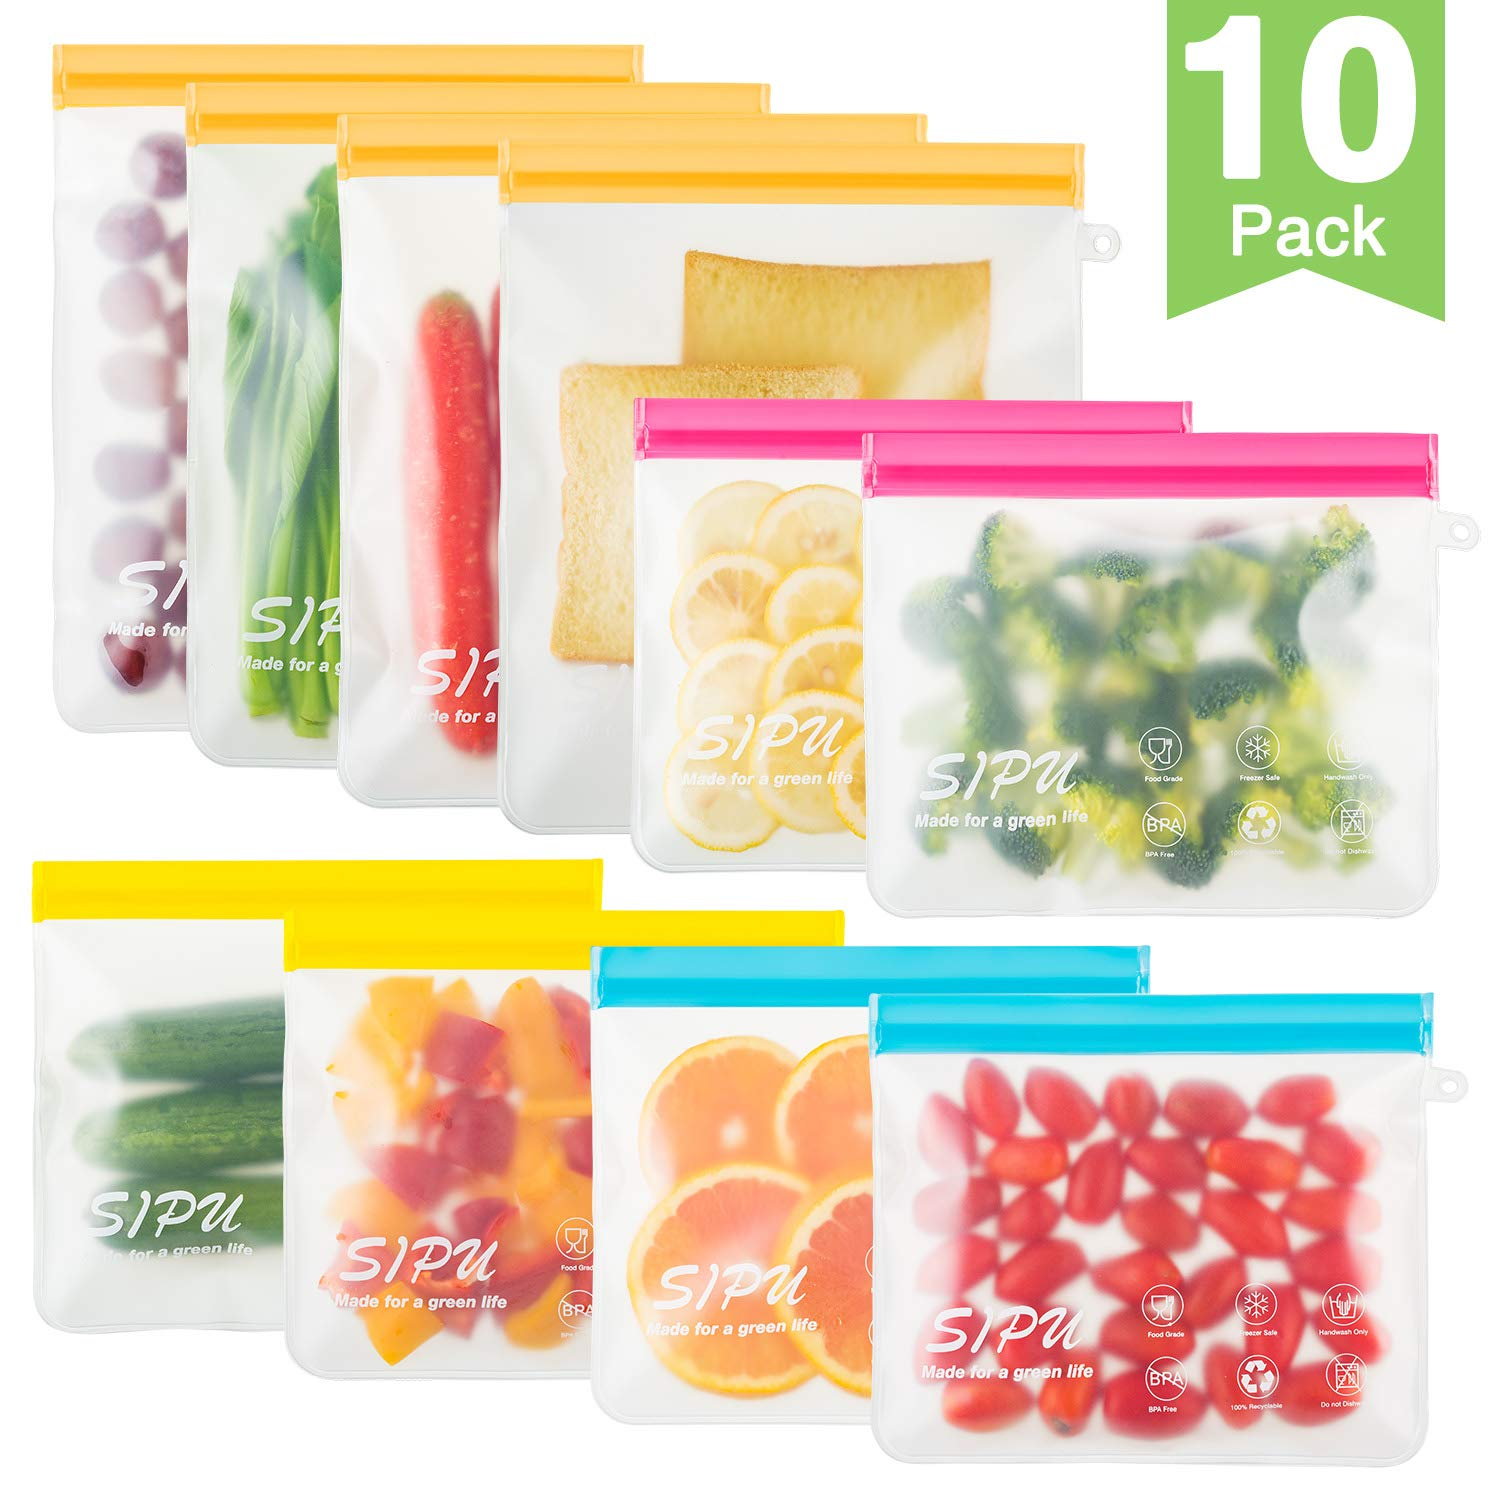 [10 Pack] DUAL Leakproof Reusable Storage Bags - (4 Gallon Bags + 6 Sandwich Bags), Reusable Ziplock Bags Freezer Safe, Extra Thick PEVA BPA Bags for Lunch, Snacks, Toiletries, Make-up